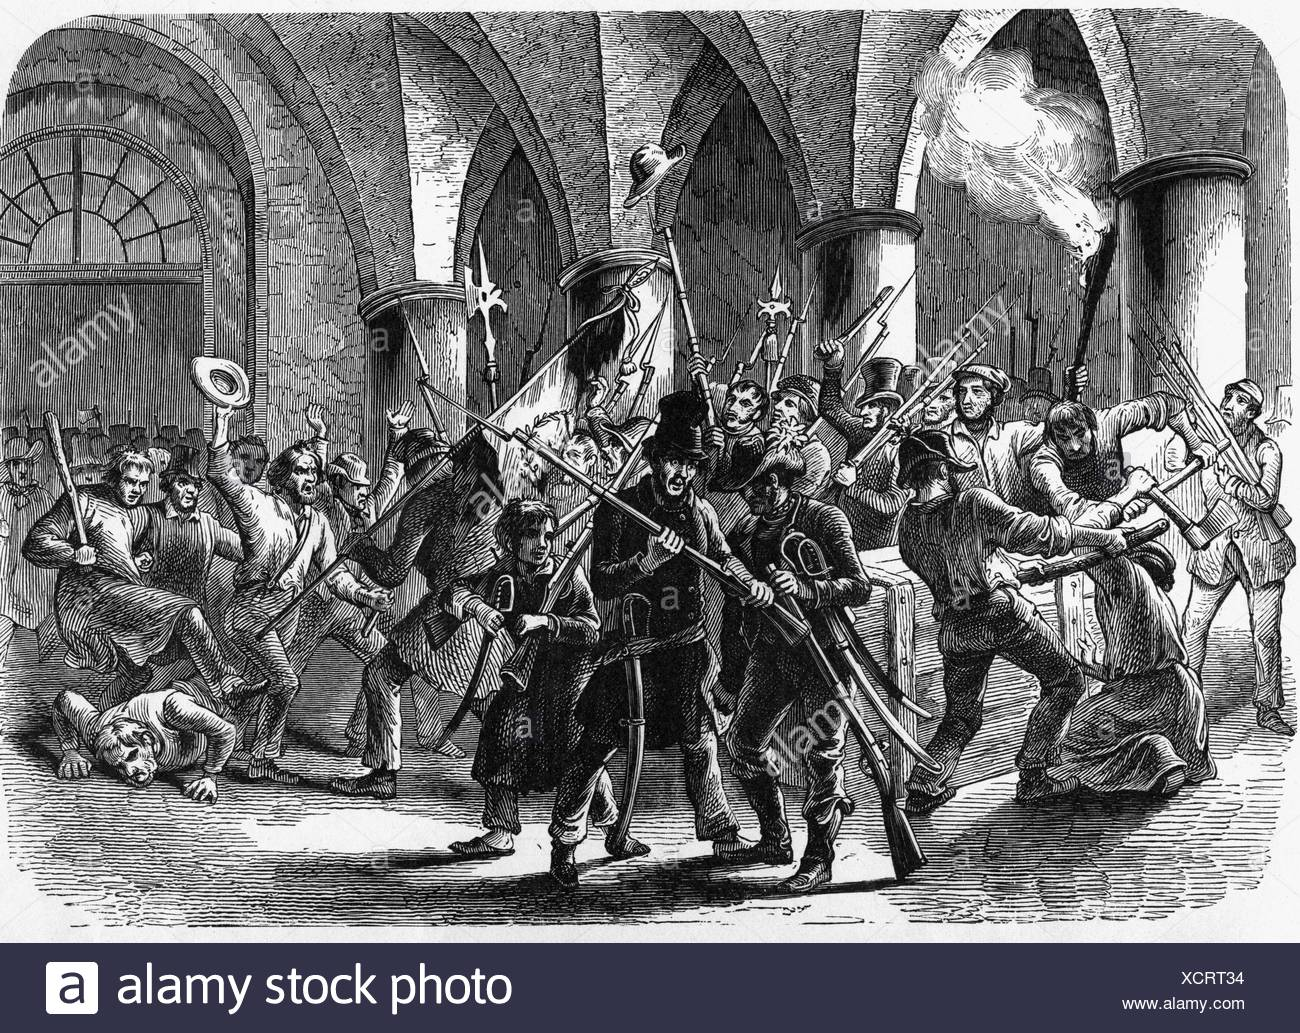 events, revolutions 1848 - 1849, Germany, Prussia, storming of the Berlin armoury, 14.6.1848, wood engraving, 19th century, Revolution, looting, weapons, revolutionaries, people, historic, historical, Additional-Rights-Clearances-NA Stockbild